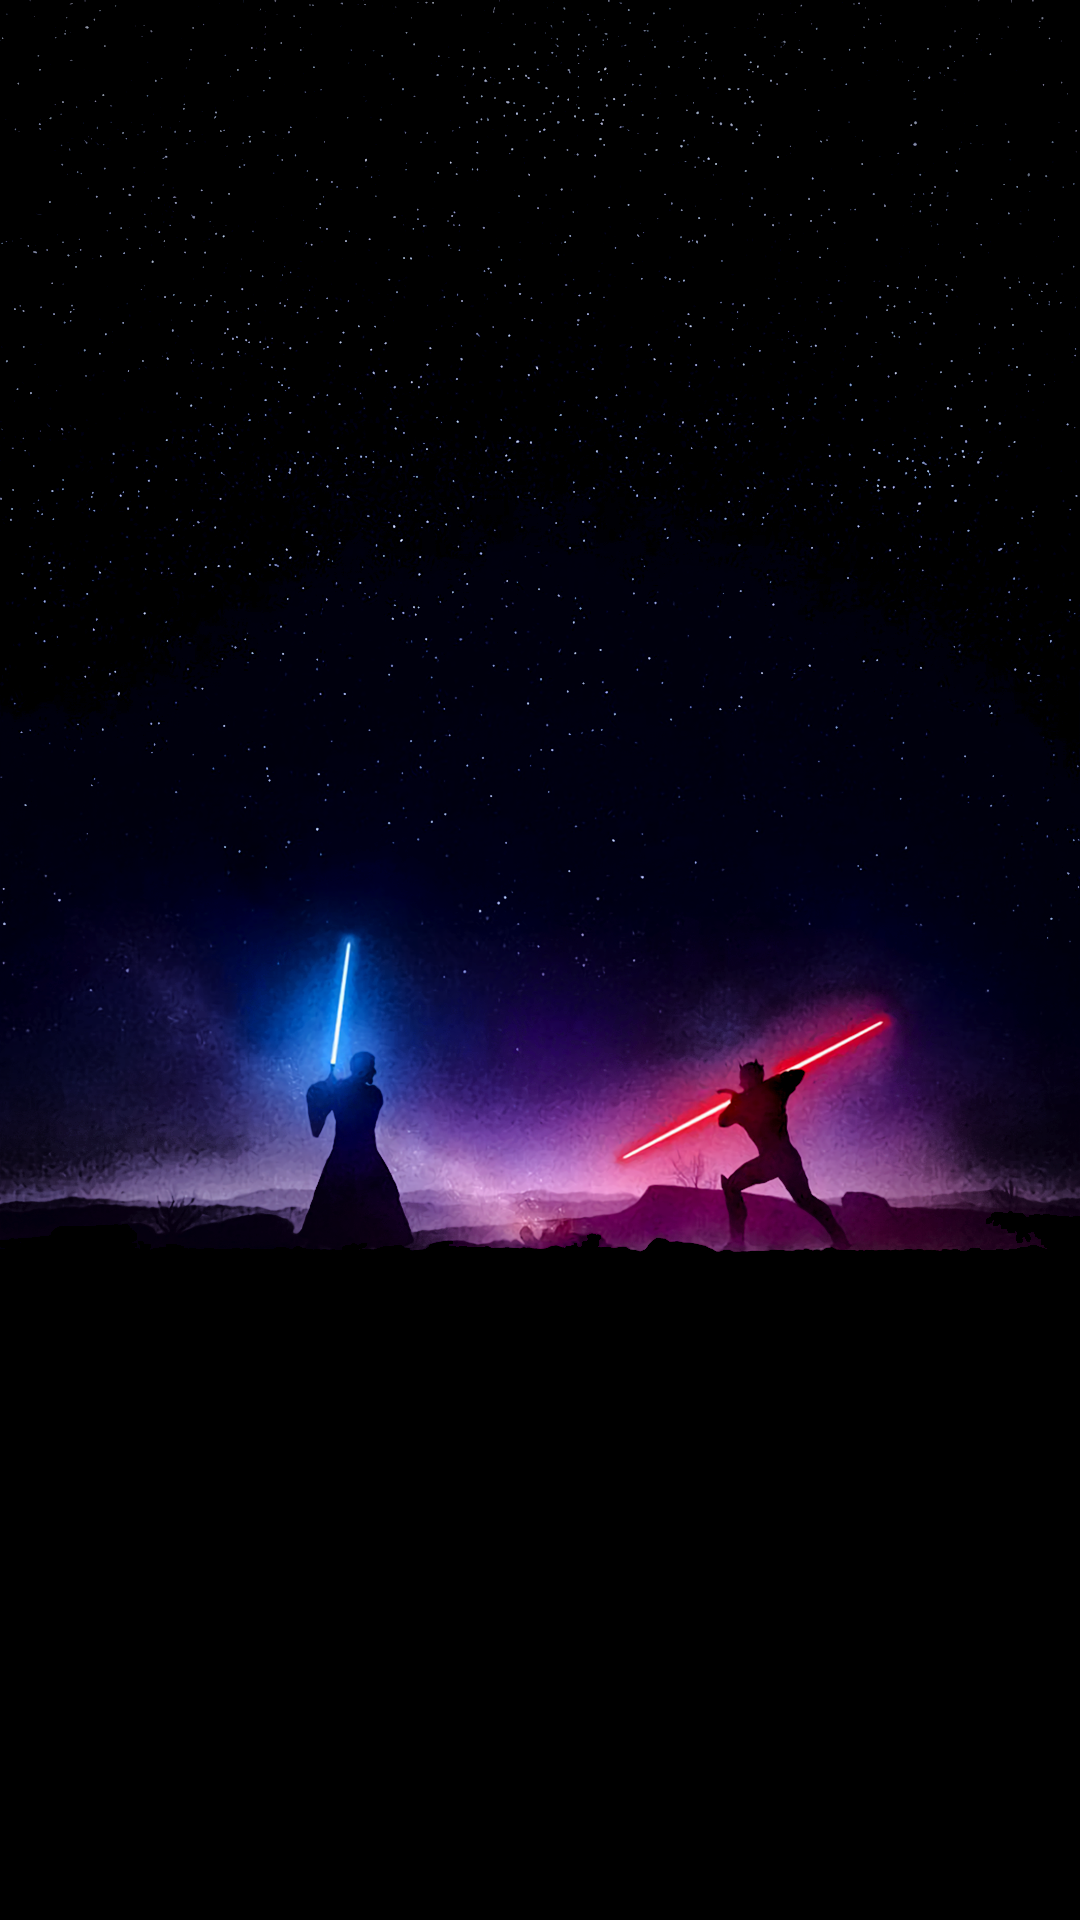 Star Wars Hd Mobile Wallpapers Wallpaper Cave